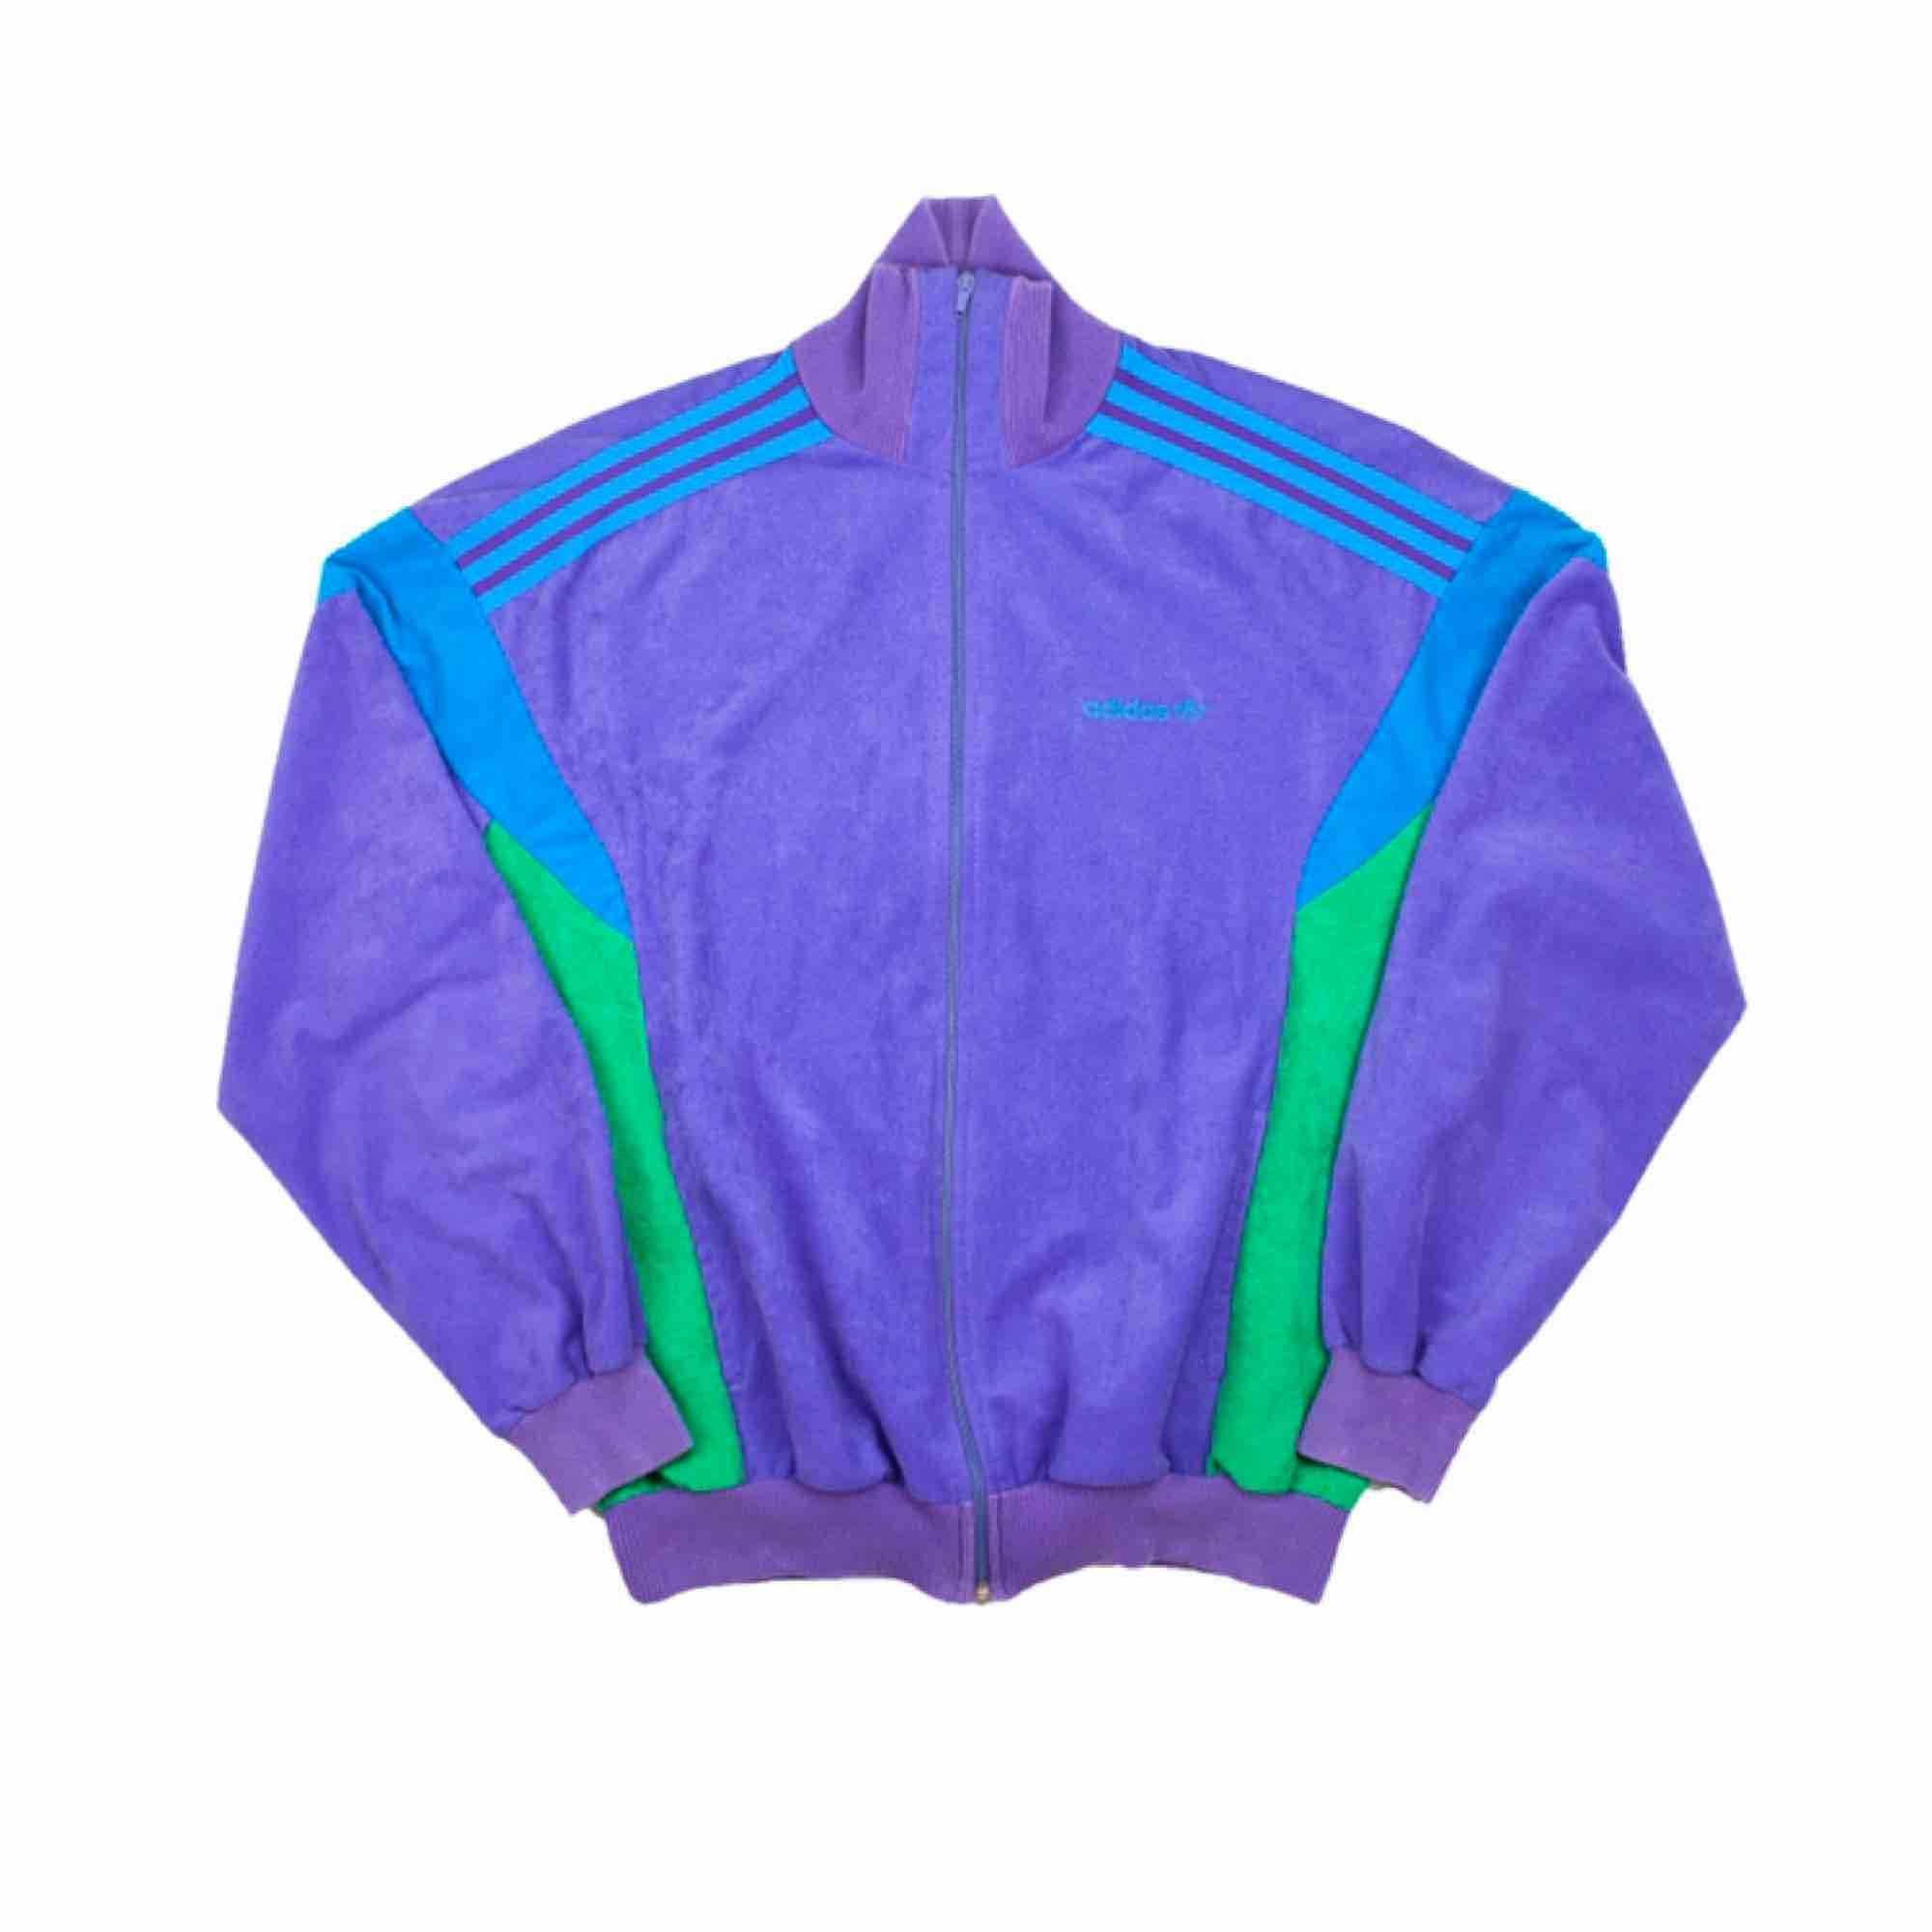 Vintage 80s 90s Adidas unisex velvet track jacket in purple SIZE Label: UK M, fit best XS-M Measurements (flat): Length: 64 Pit to pit: 59 Sleeve inseam: 48 Free shipping! Read the full description at our website majorunit.com No returns.. Jackor.